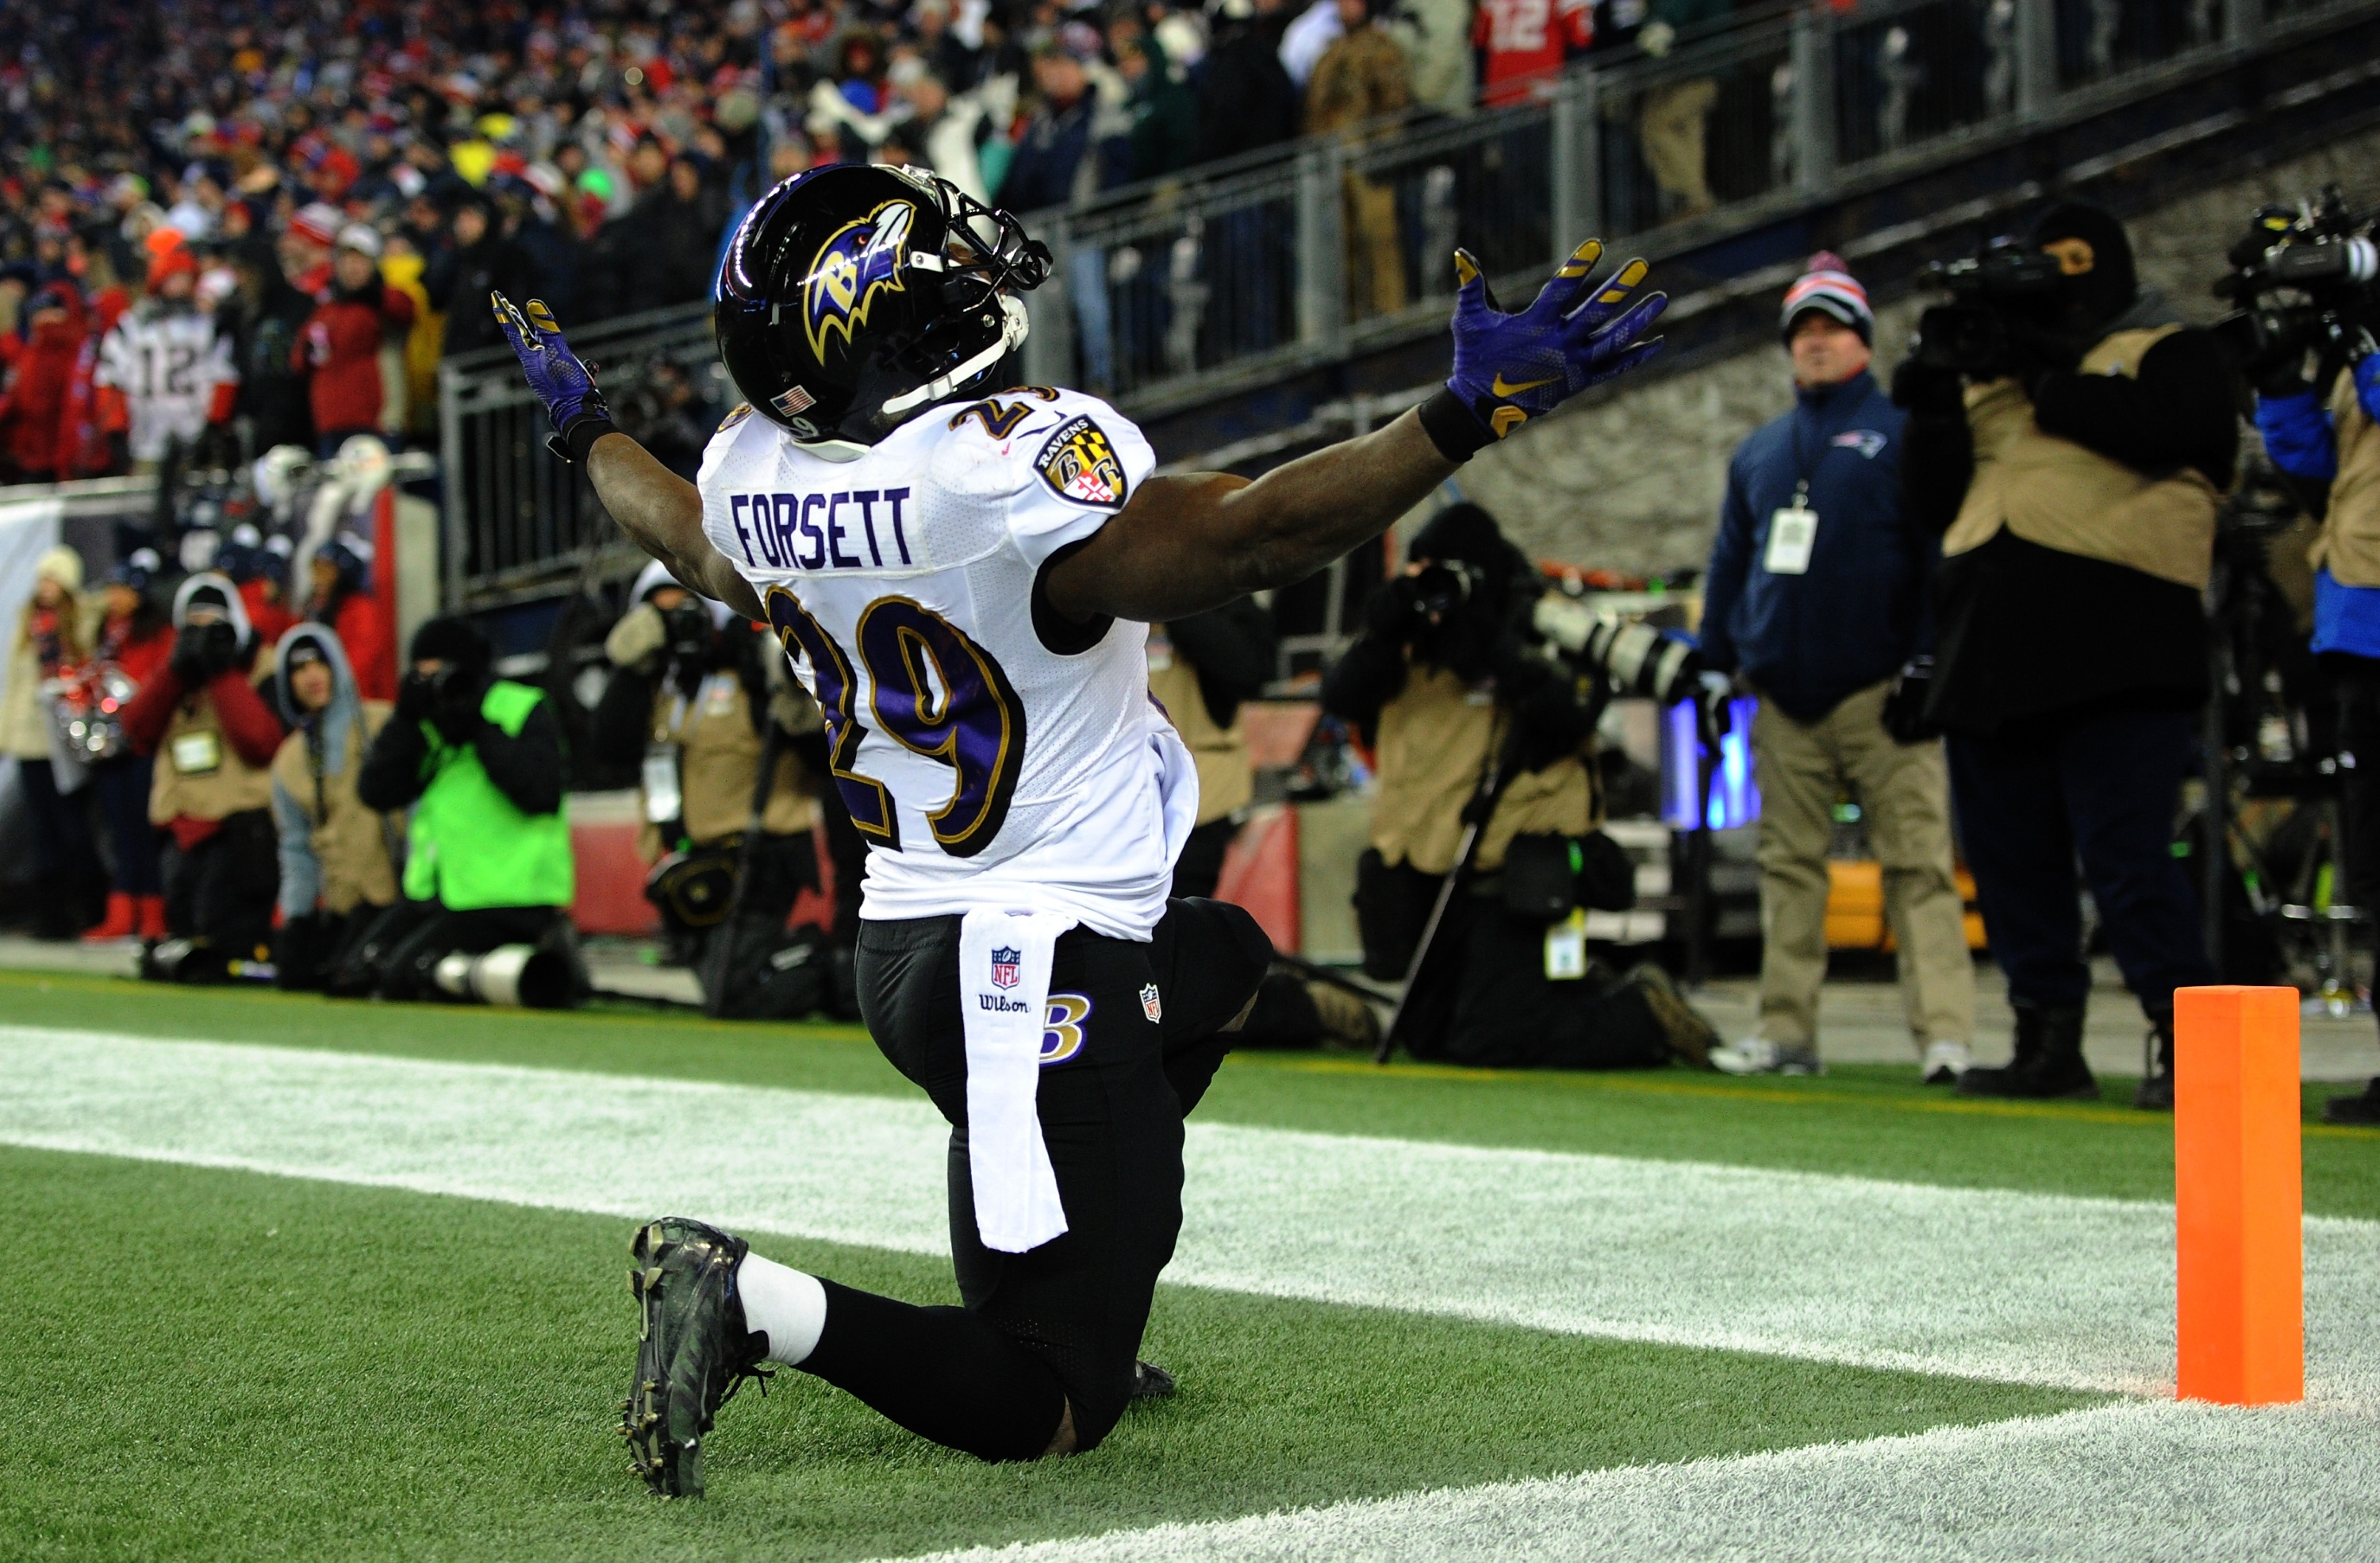 Big numbers can come in small packages. That's certainly the case for Forsett in '15. (Getty)